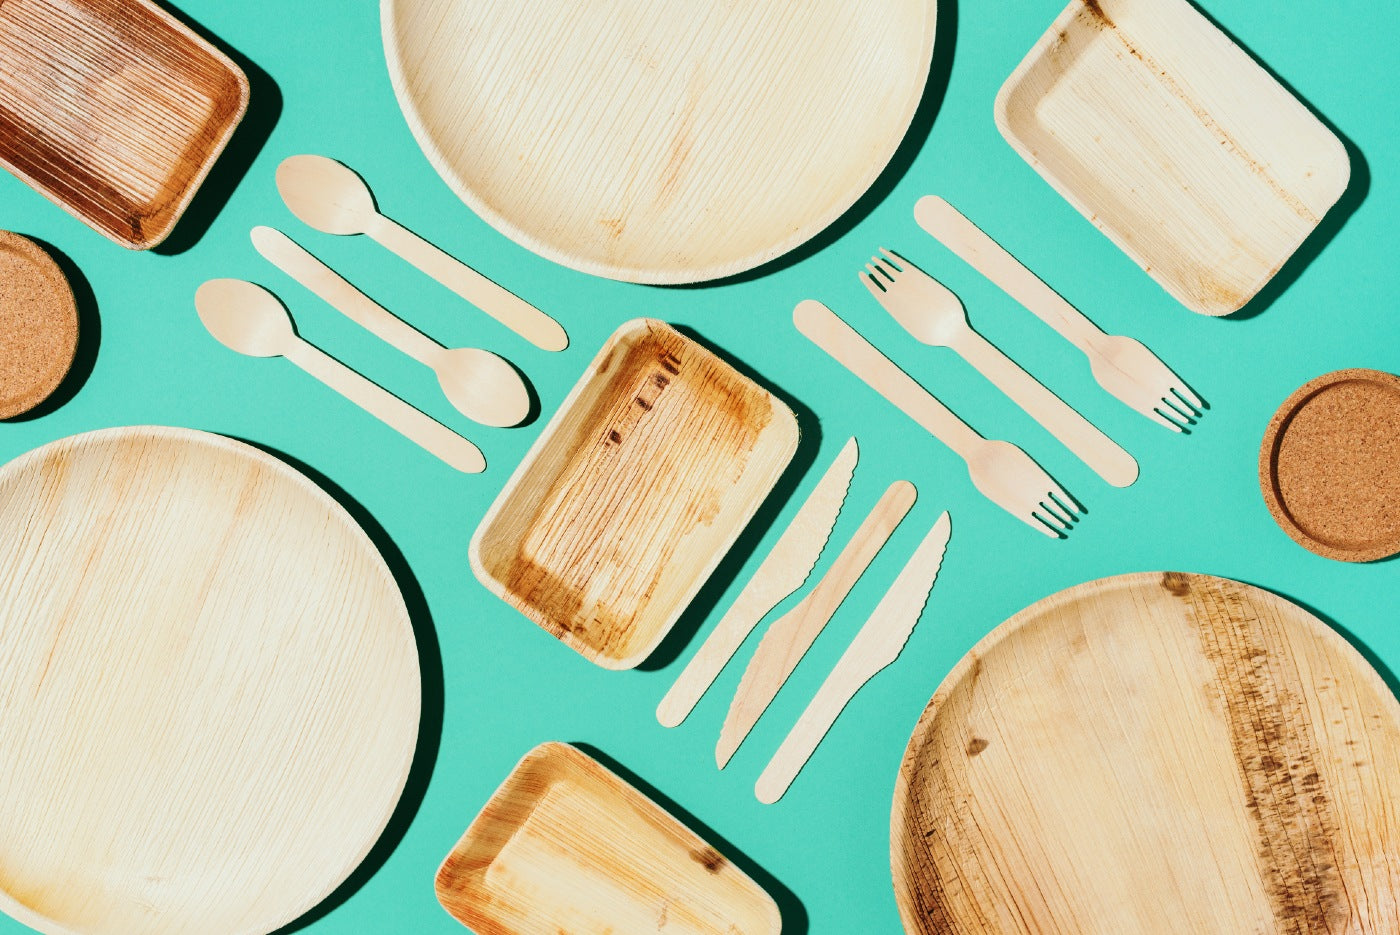 Palm Leaf Plates Vs. Bamboo Plates: Which One Is Better?